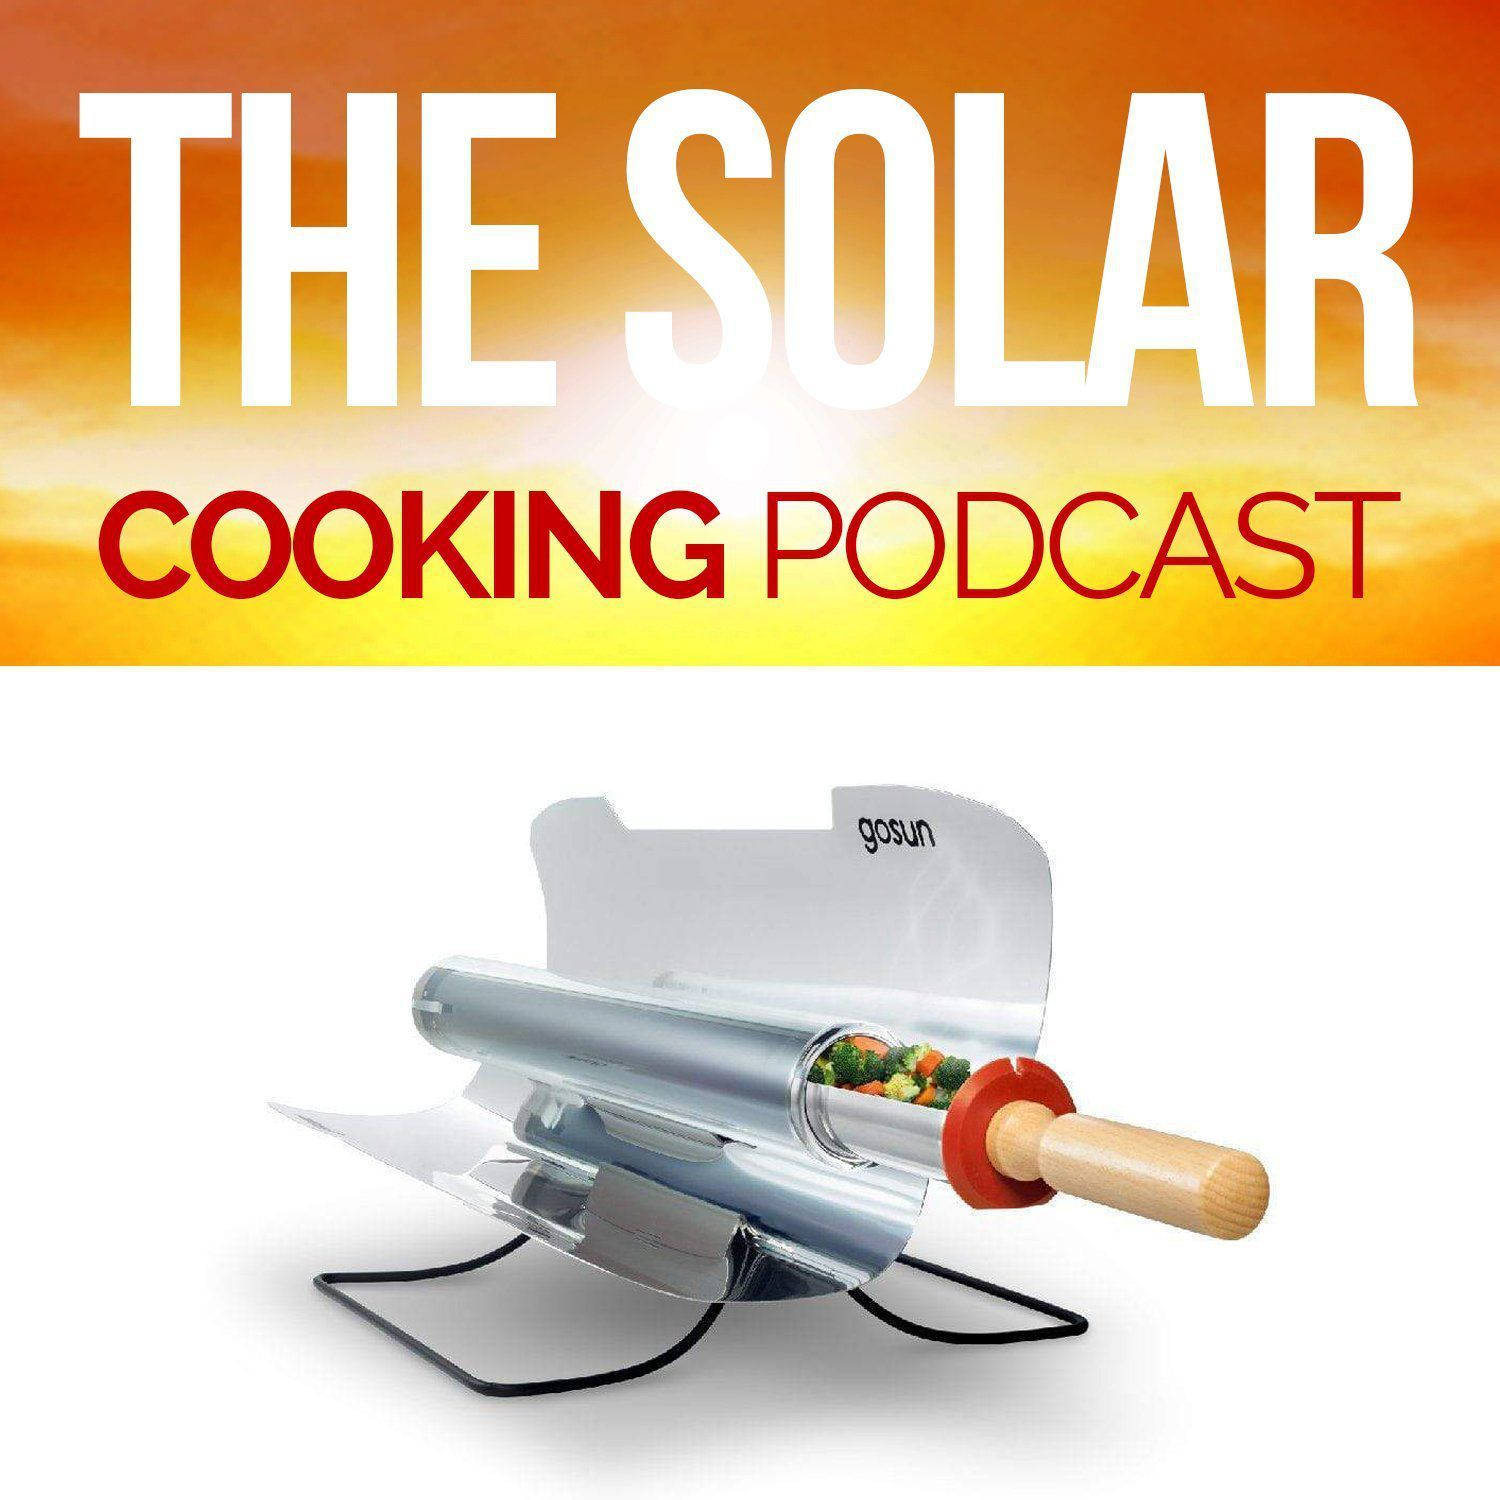 S1 Ep5: Going Camping with a Solar Cooker